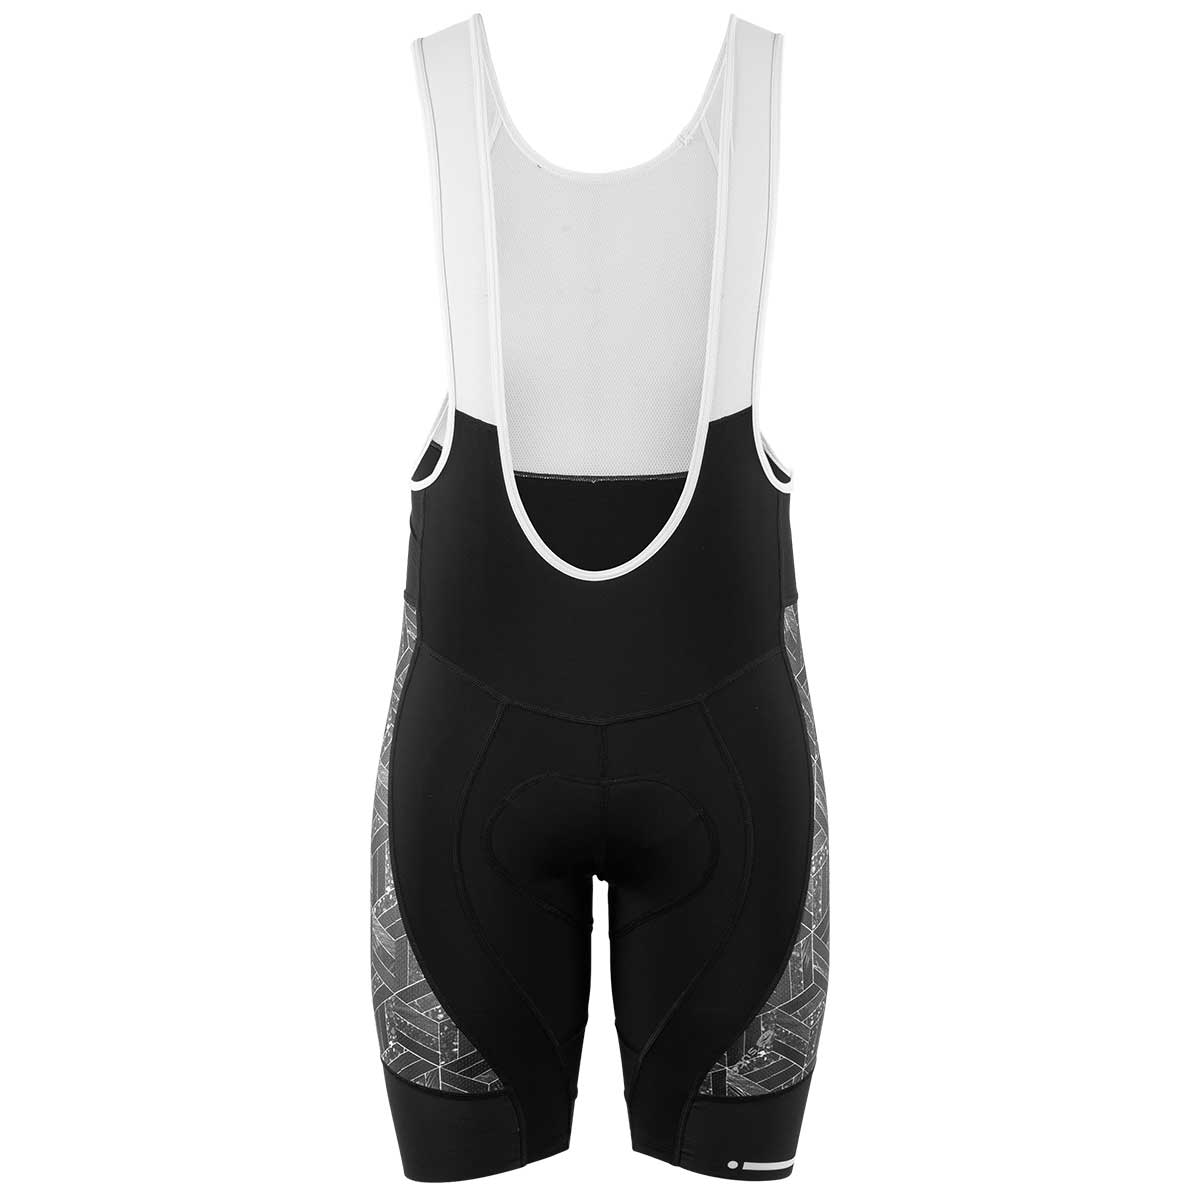 Sugoi men's RS Pro bib shorts in Brix, with black body, white suspender straps, and a geometric side panel pattern